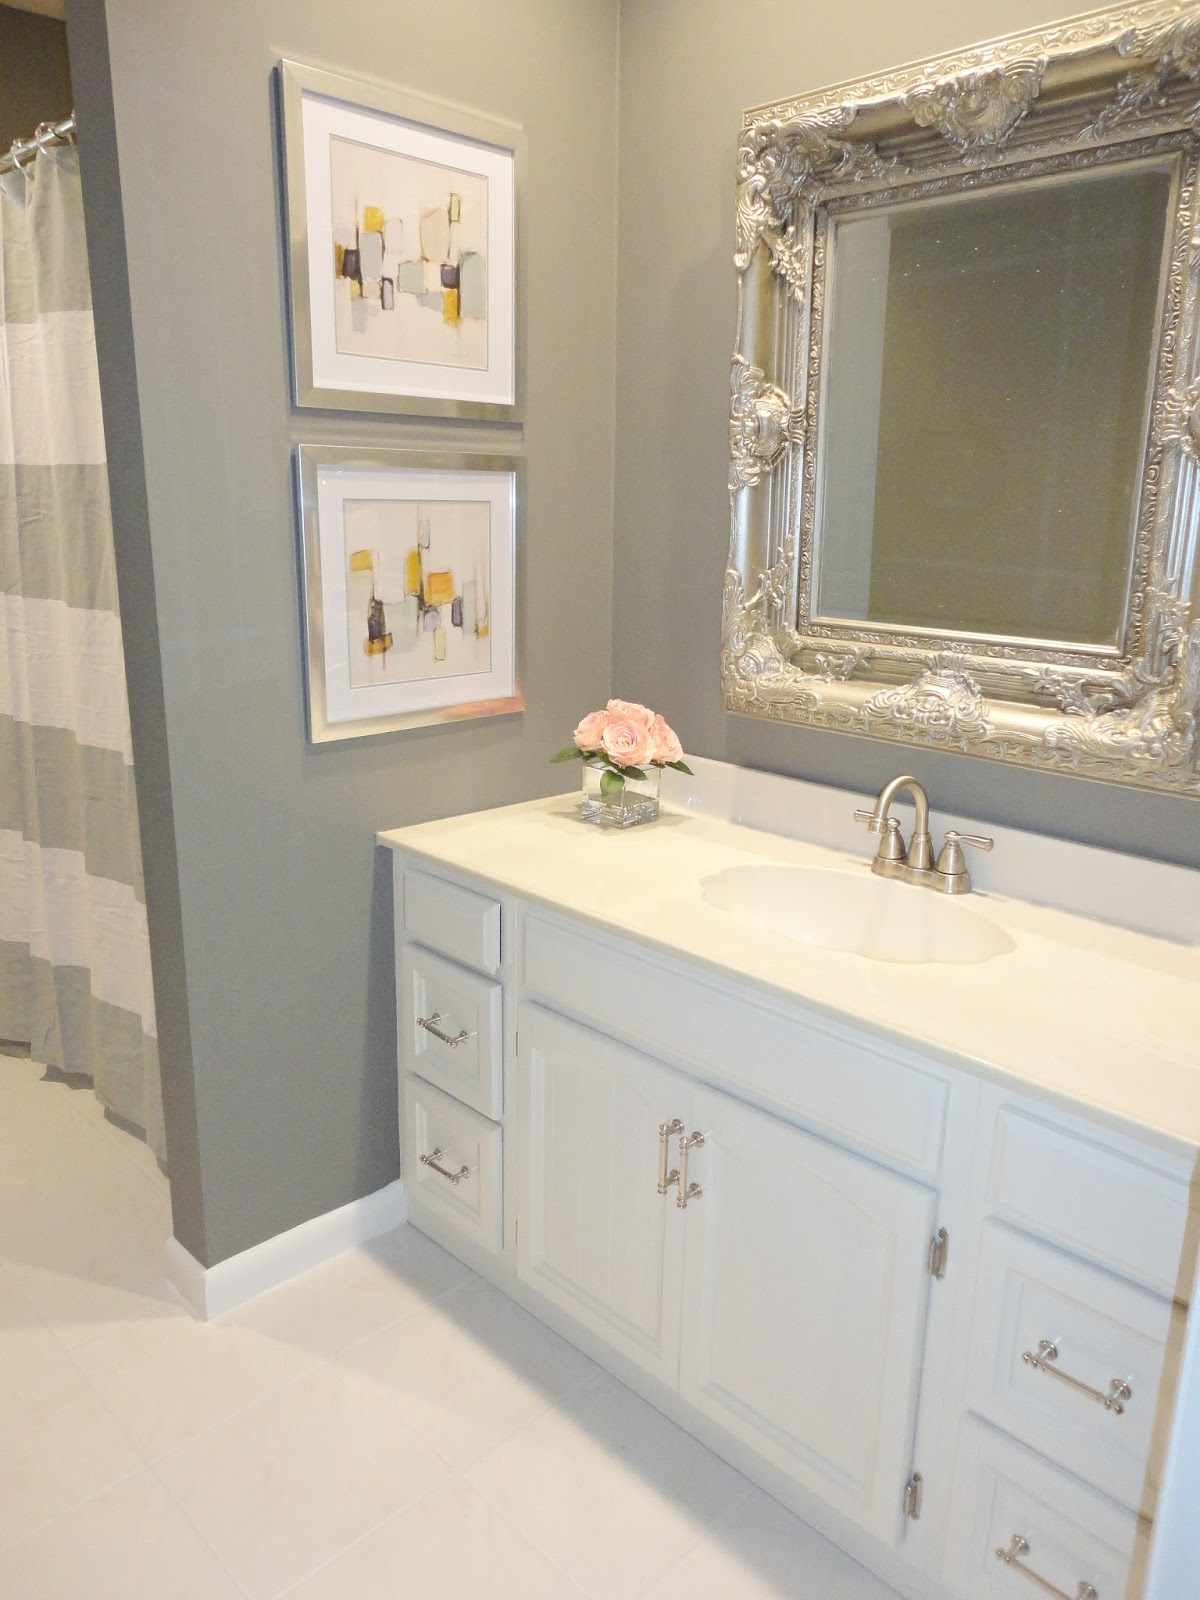 livelovediy diy bathroom remodel on a budget bathroom apartment decorating ideas on a budget